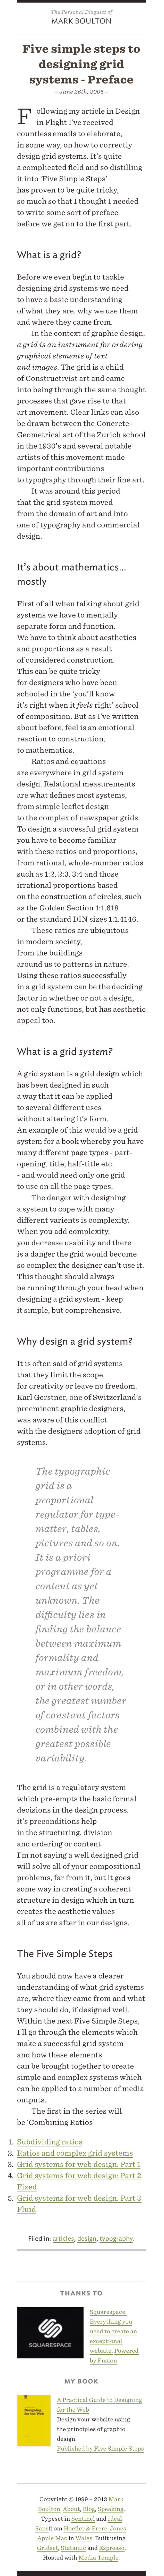 Five simple steps to designing grid systems - Preface